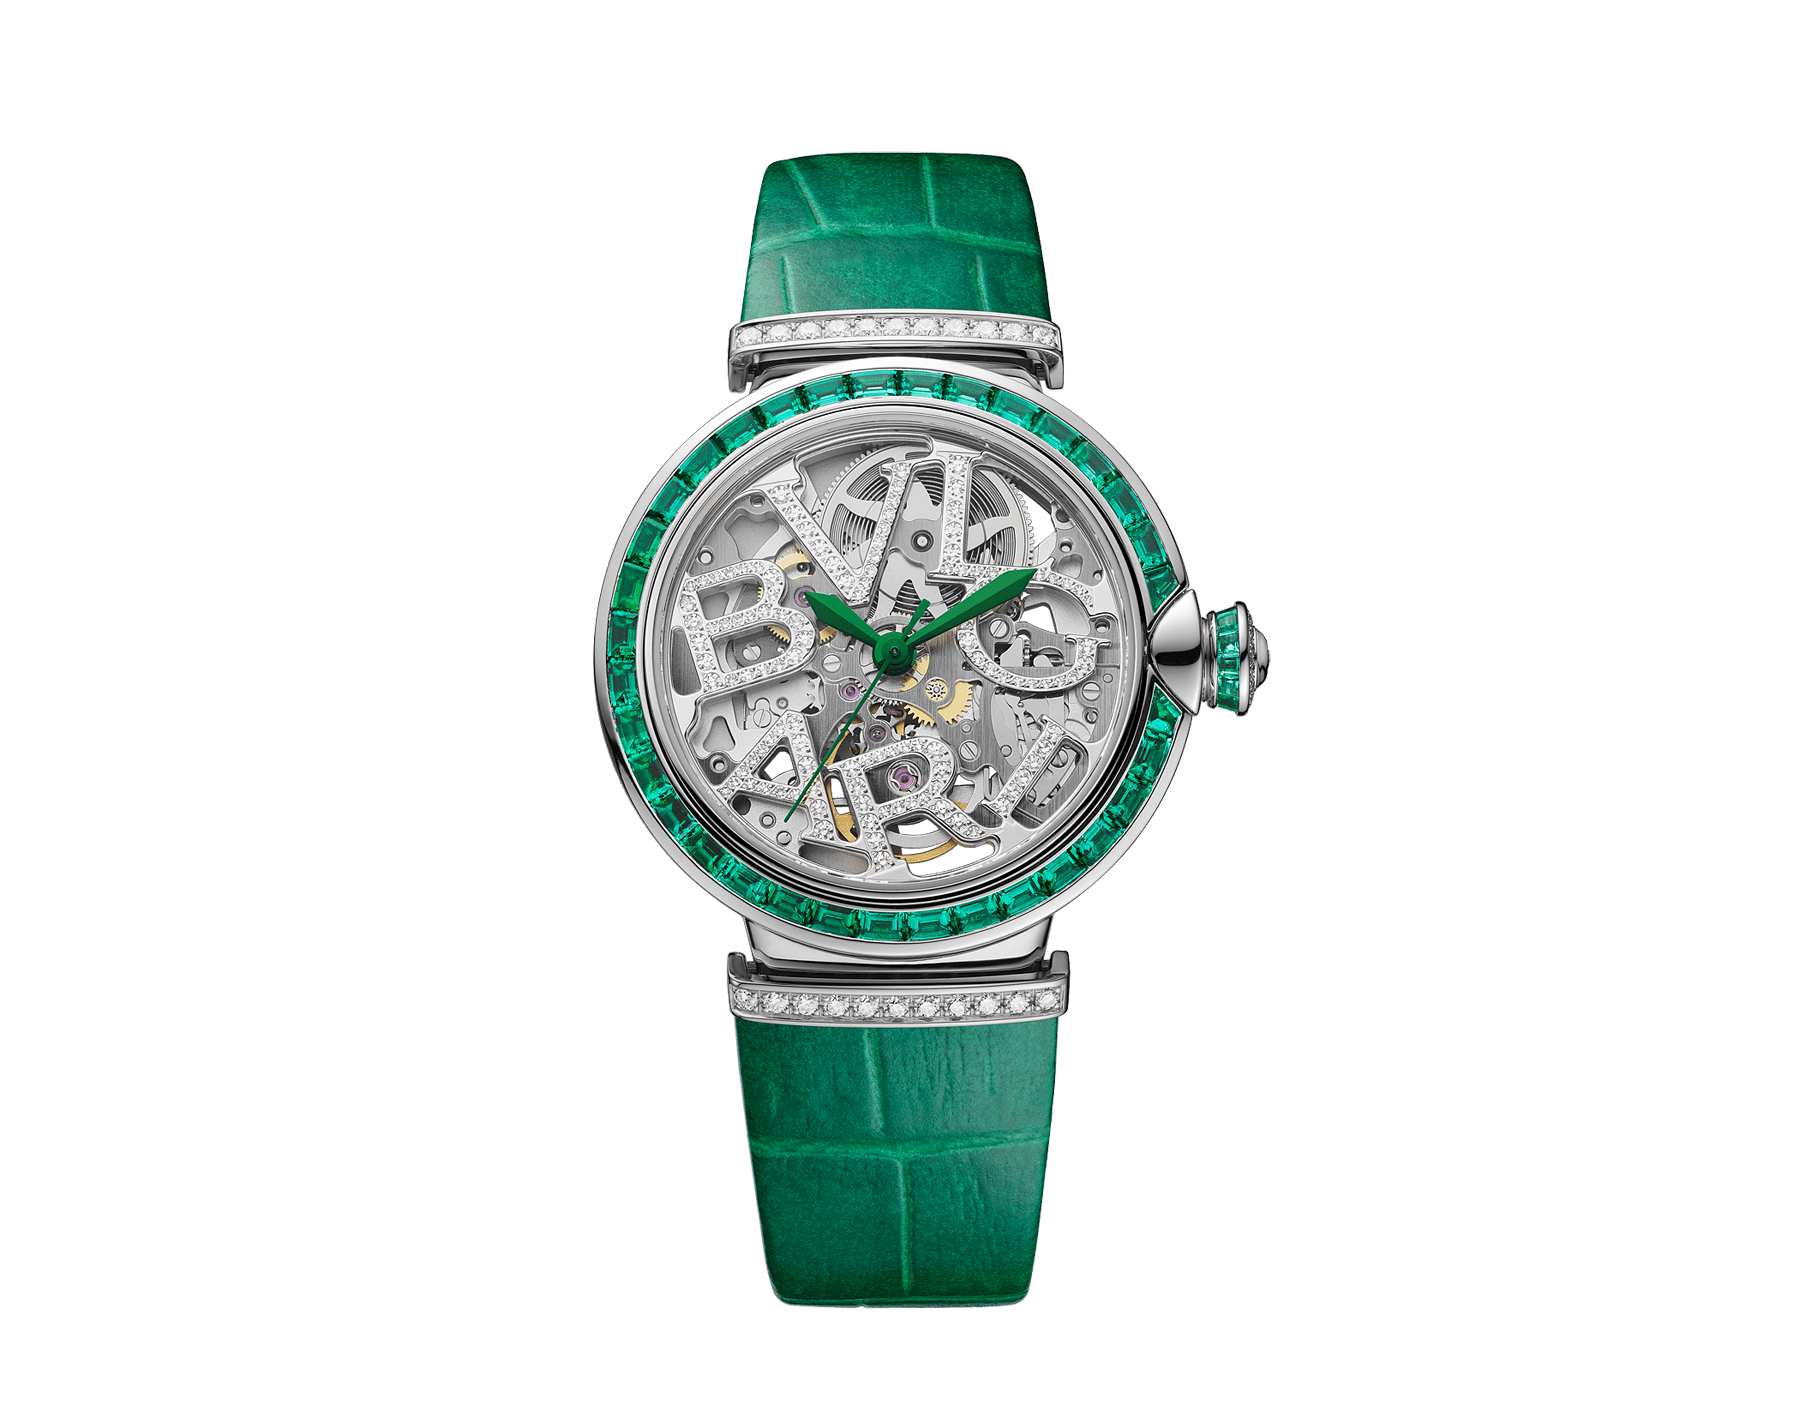 LVCEA Skeleton watch with mechanical movement, automatic winding, 18 kt white gold case set with baguette-cut emeralds, 18 kt white gold openwork BVLGARI logo dial set with brilliant-cut diamonds, green alligator bracelet and 18 kt white gold links set with brilliant-cut diamonds 103033 image 1